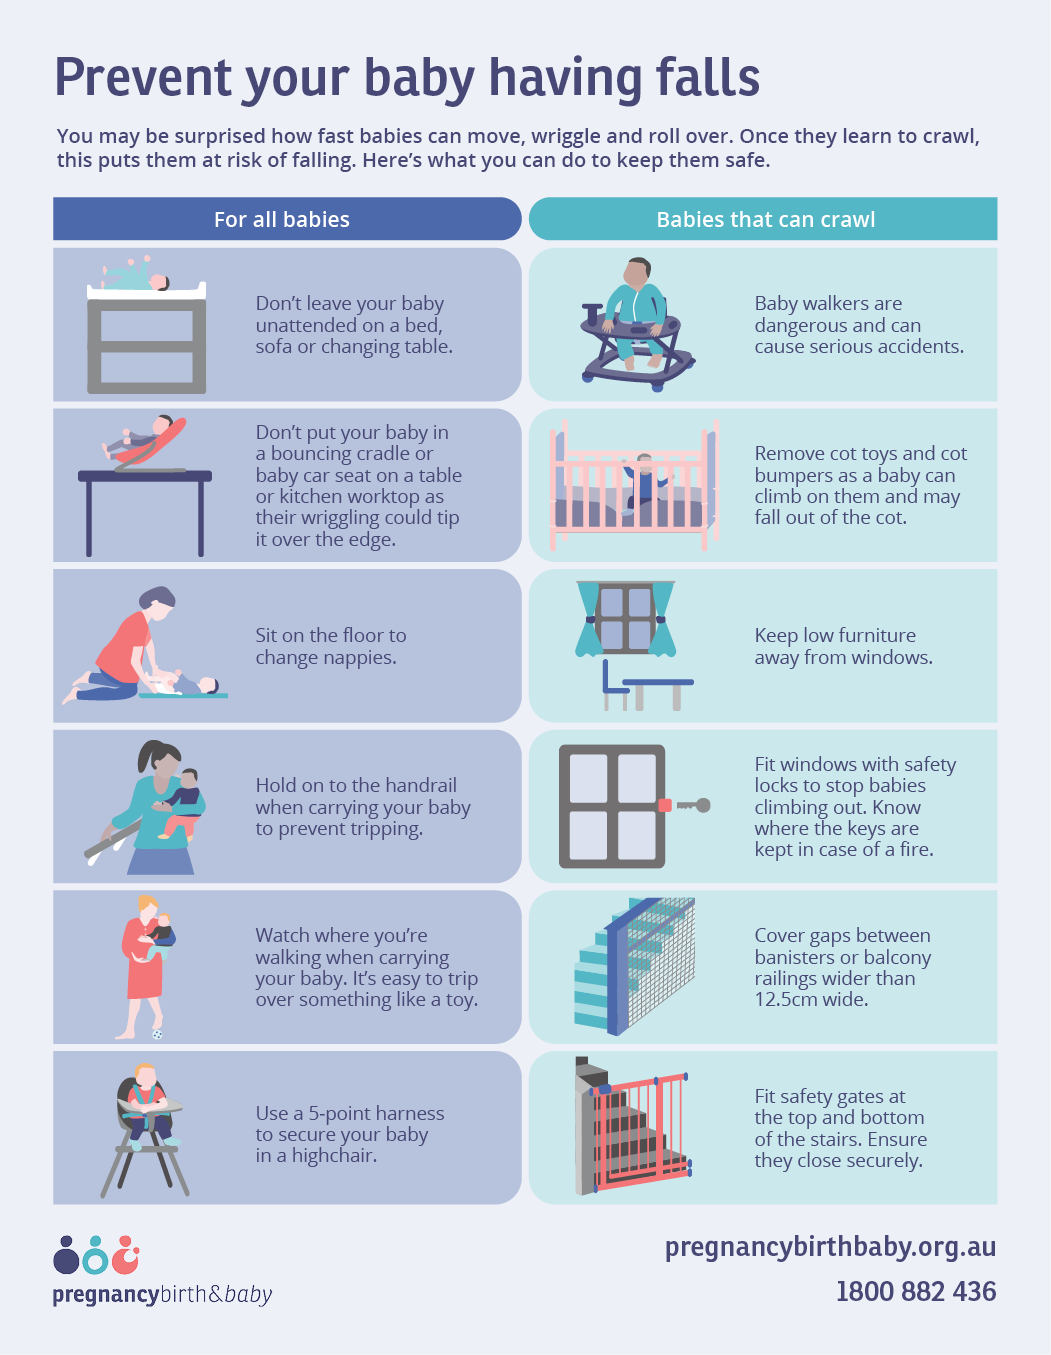 Guide to preventing your baby having falls - infographic